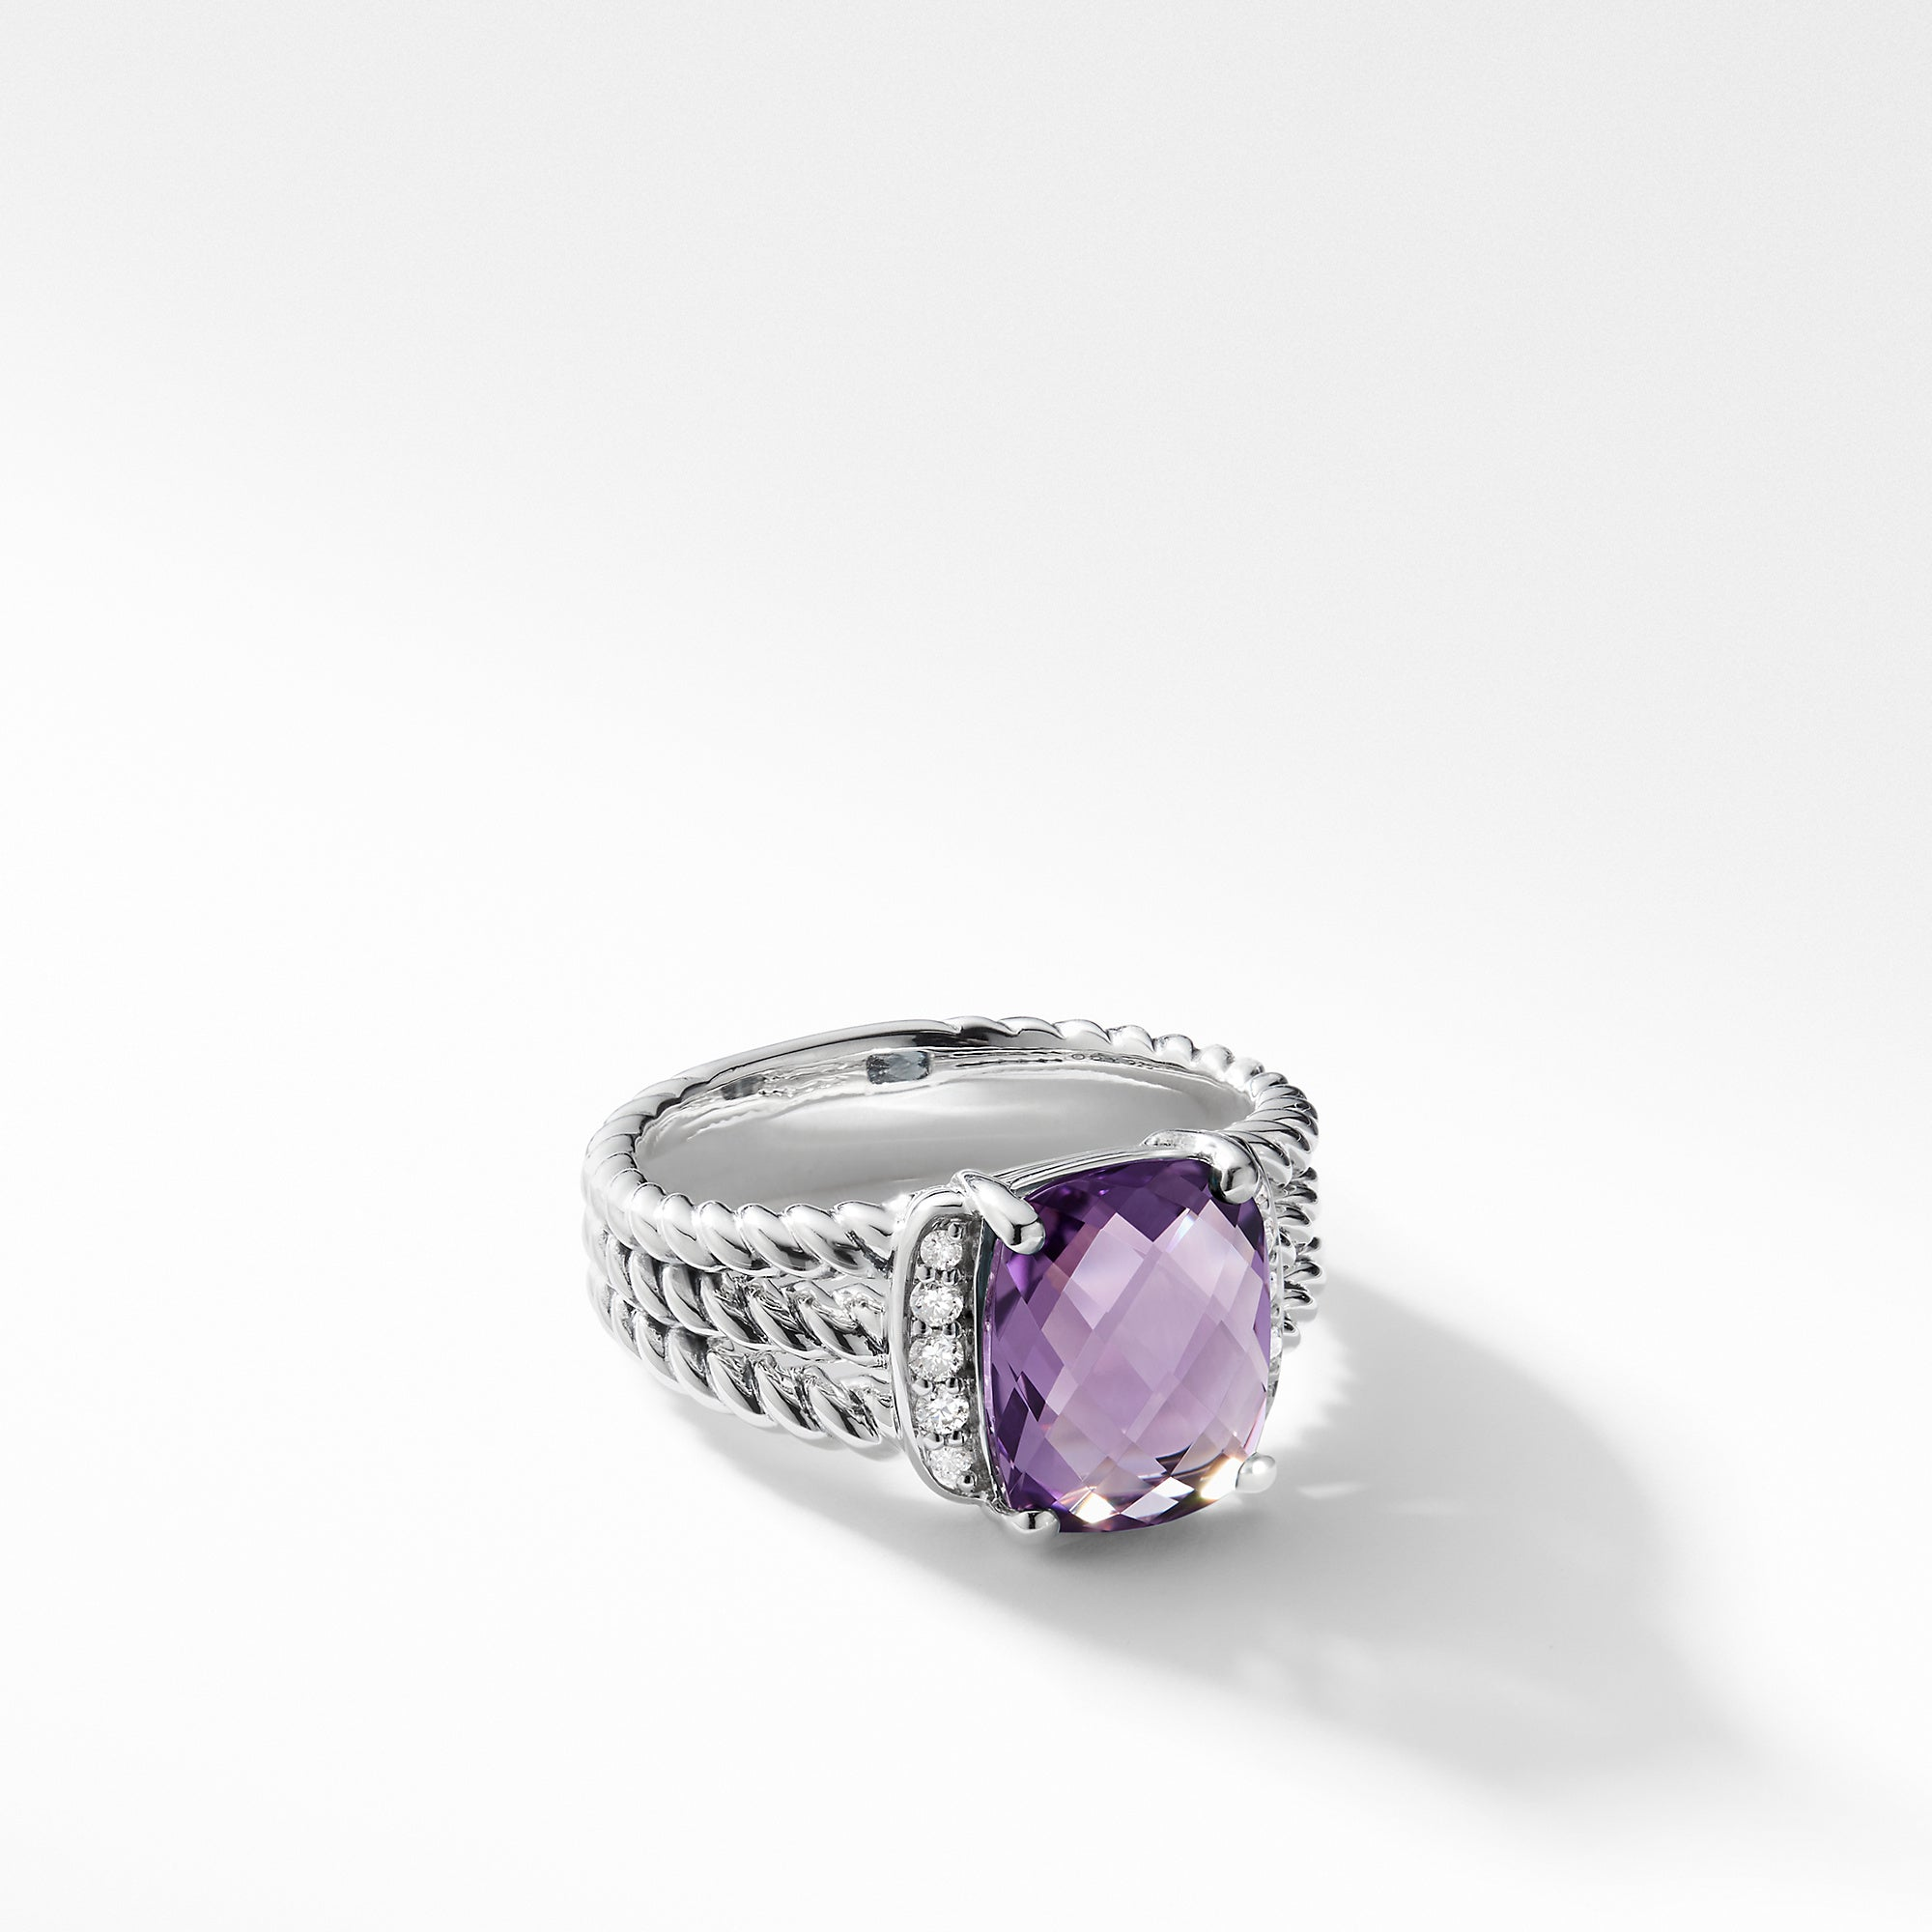 Petite Wheaton Ring with Amethyst and Diamonds